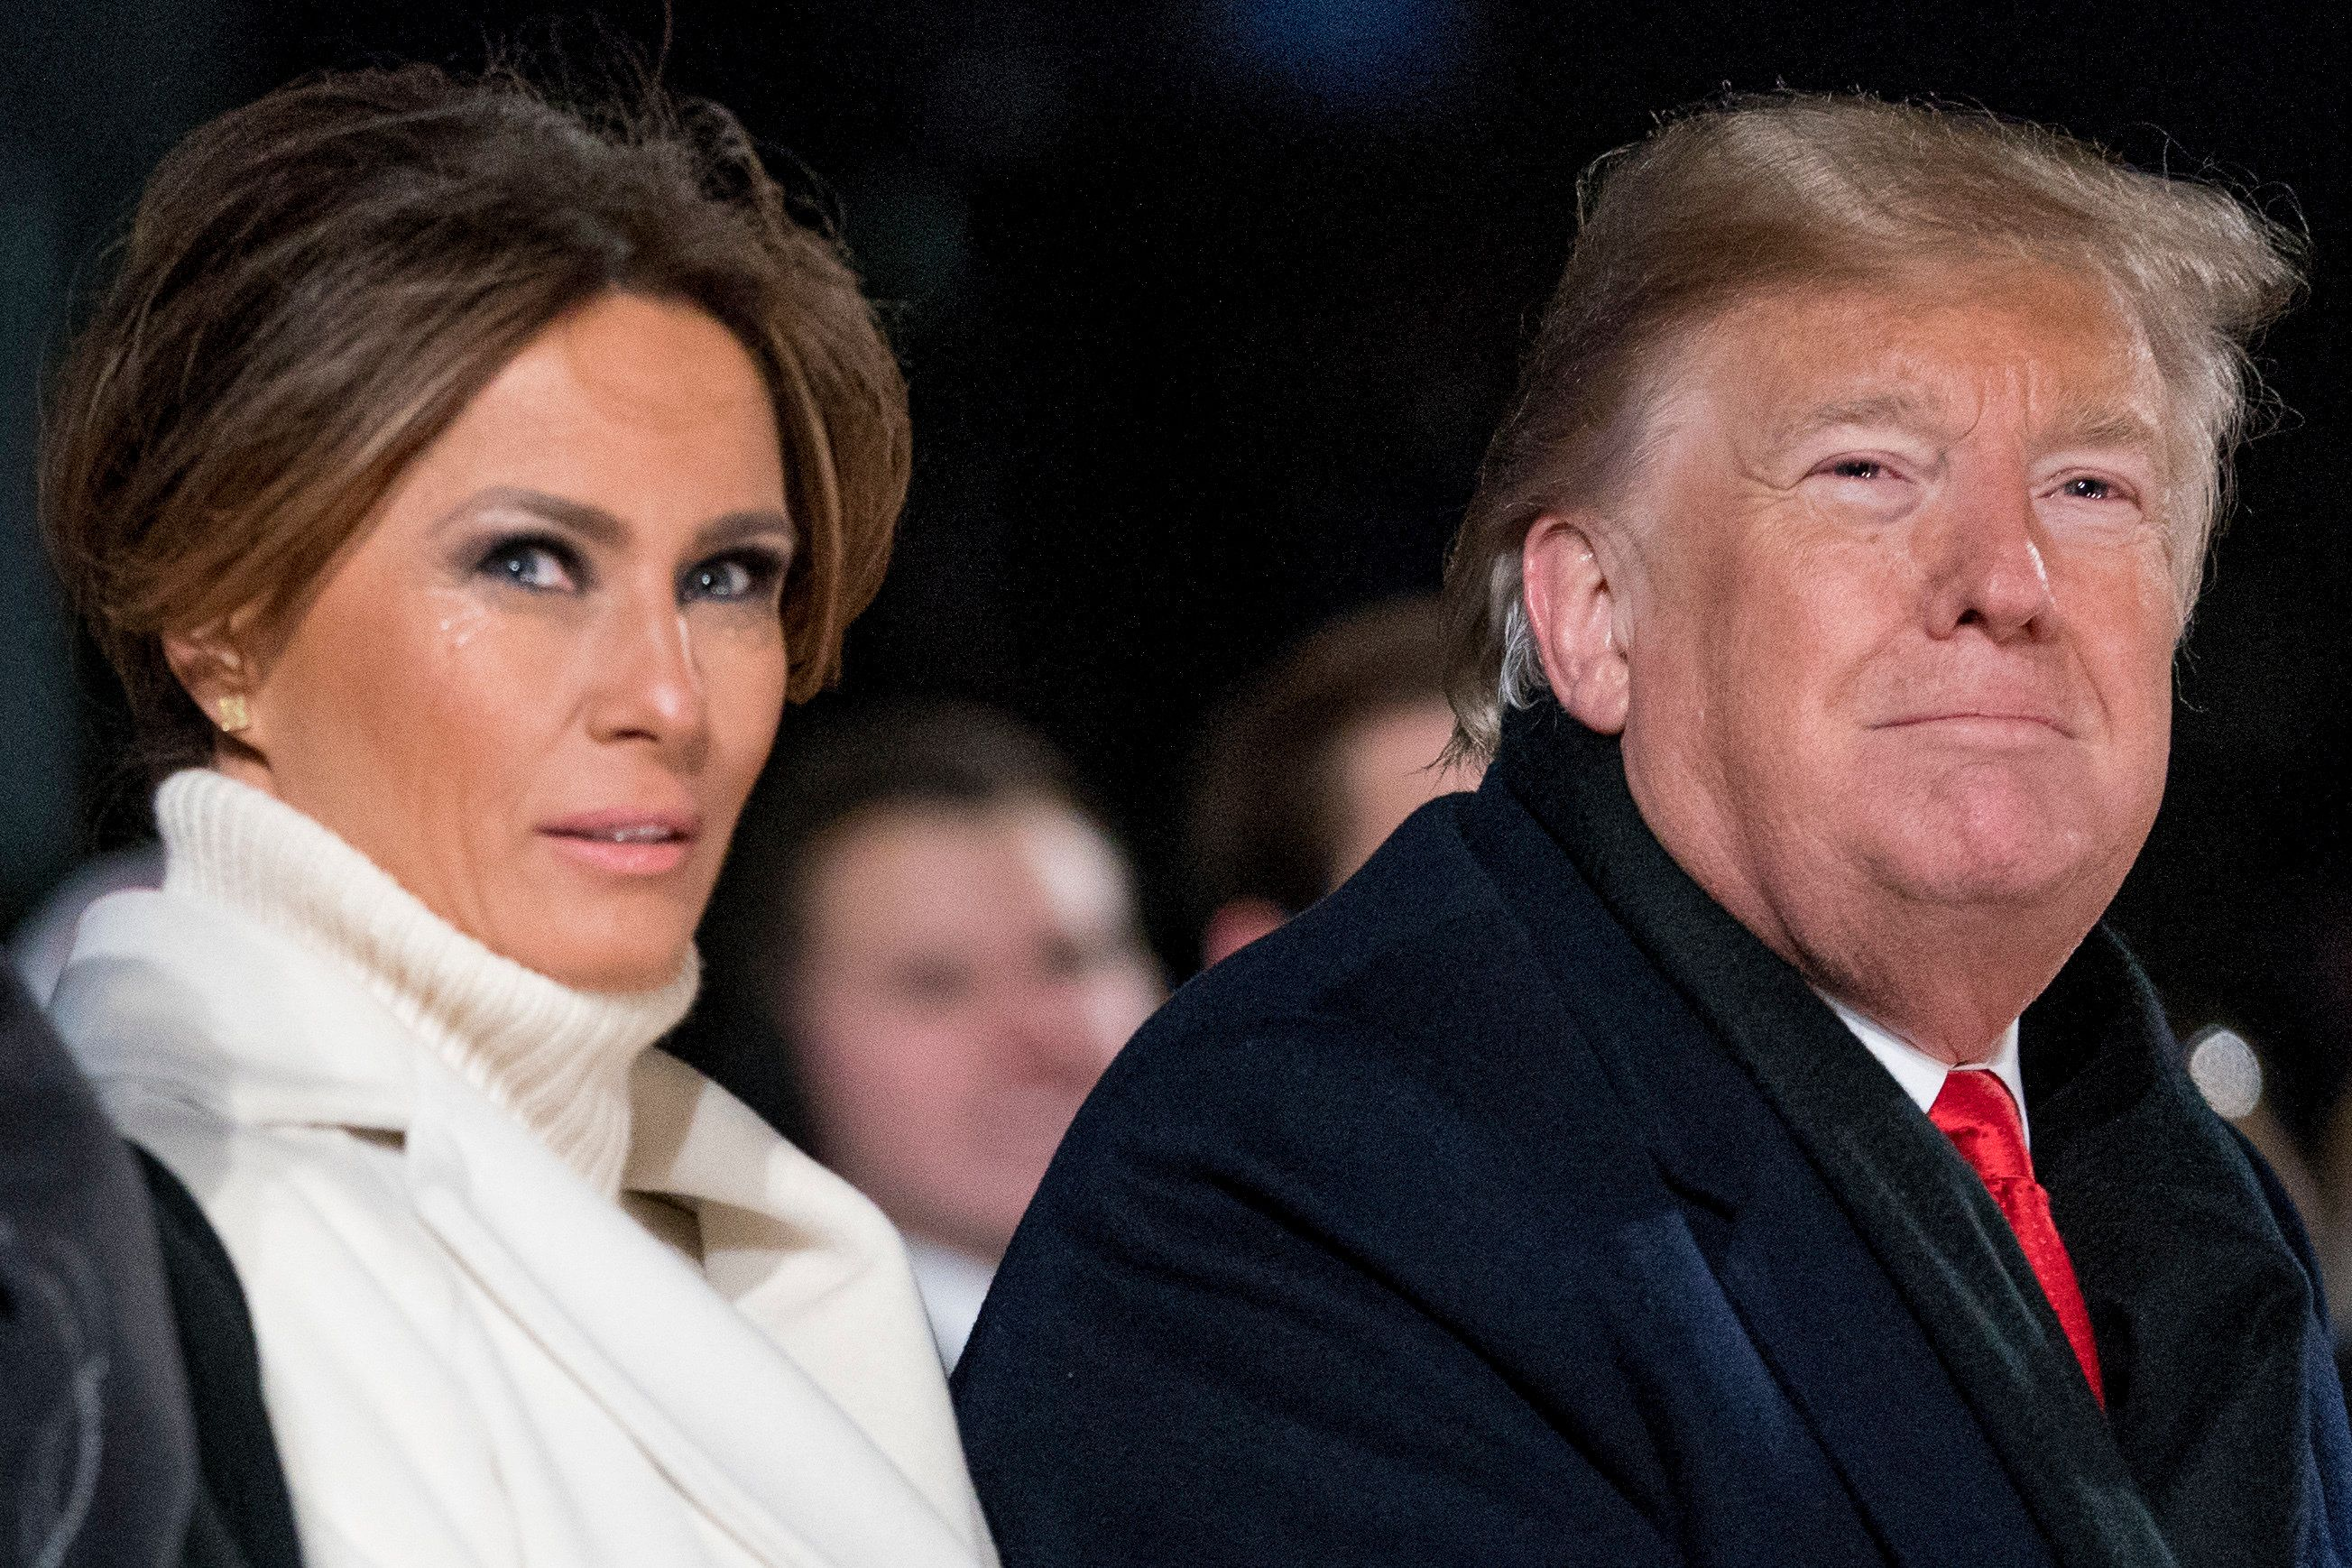 President Donald Trump and first lady Melania Trump attend the National Christmas Tree lighting ceremony at the Ellipse near the White House in Washington, Wednesday, Nov. 28, 2018. (AP Photo/Andrew Harnik)